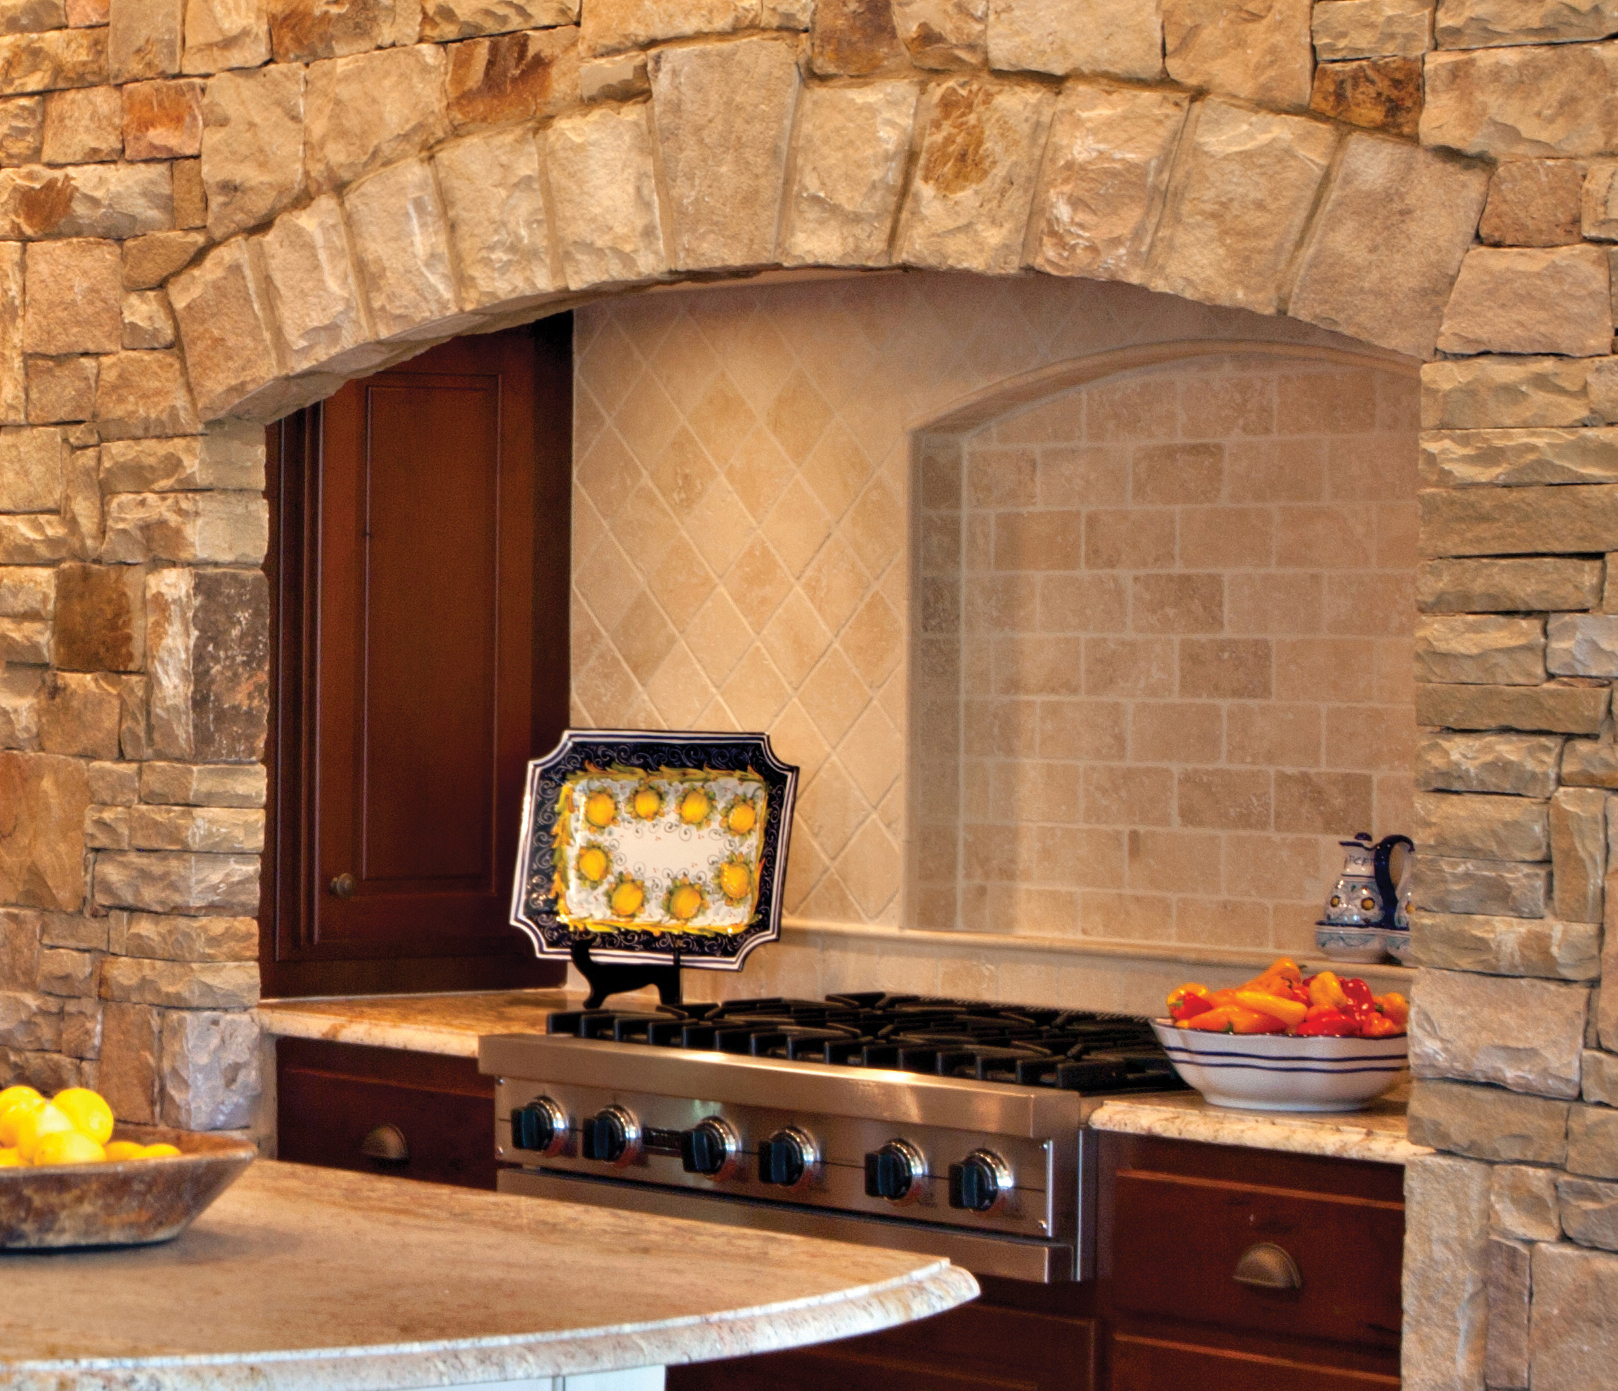 rustic stone alcove kitchen backsplash by elizabeth swartz interiors - How To Choose Kitchen Backsplash